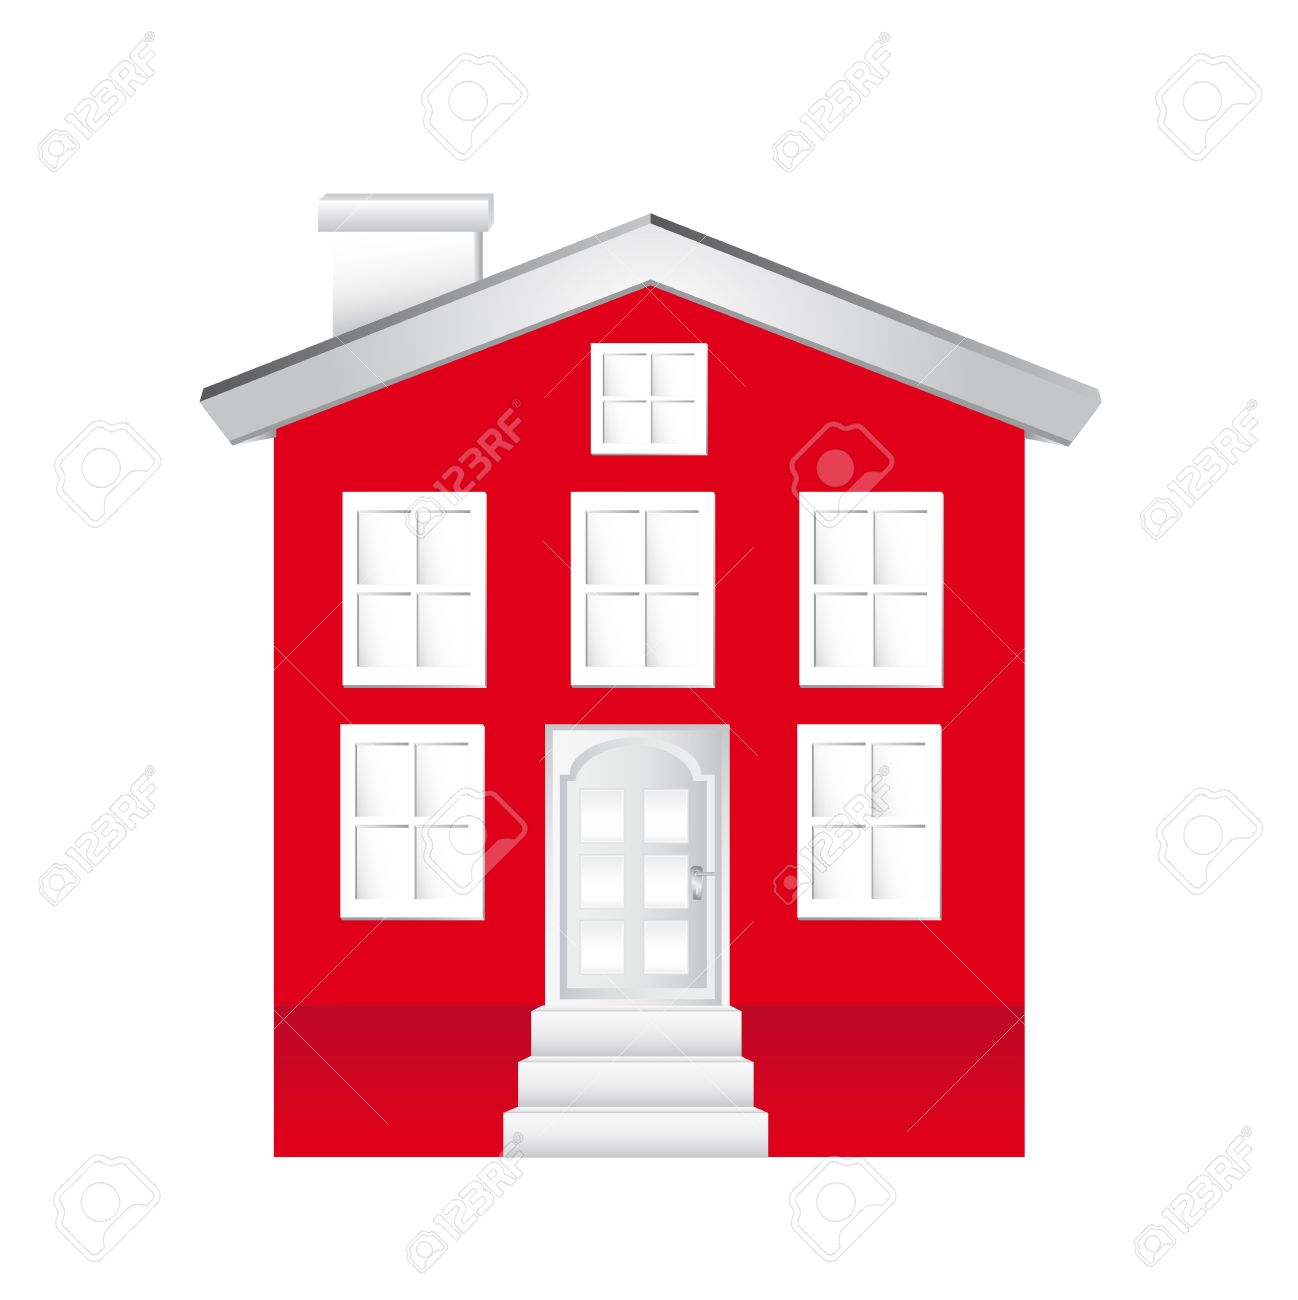 Red Building Clipart Clipground